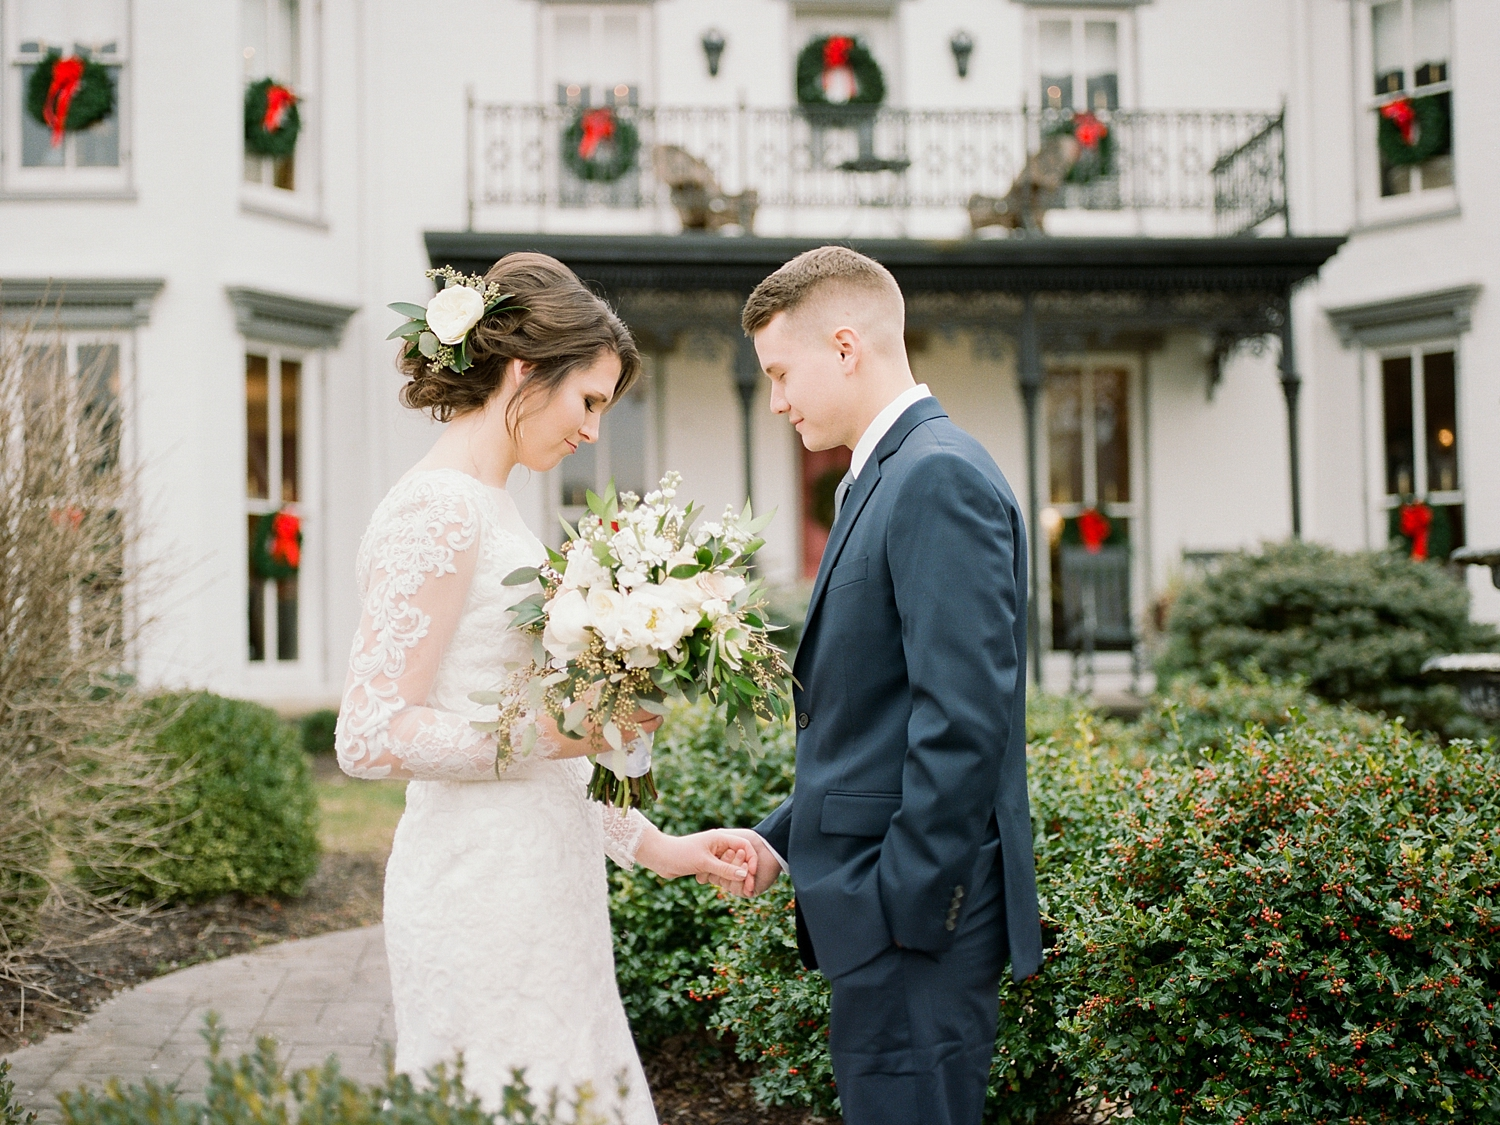 Kathryn Frugé Cincinnati Film Wedding Photographer Best Cincinnati Wedding Photographer Lexington Louisville Columbus Nashville Richwood on the River_0001.jpg